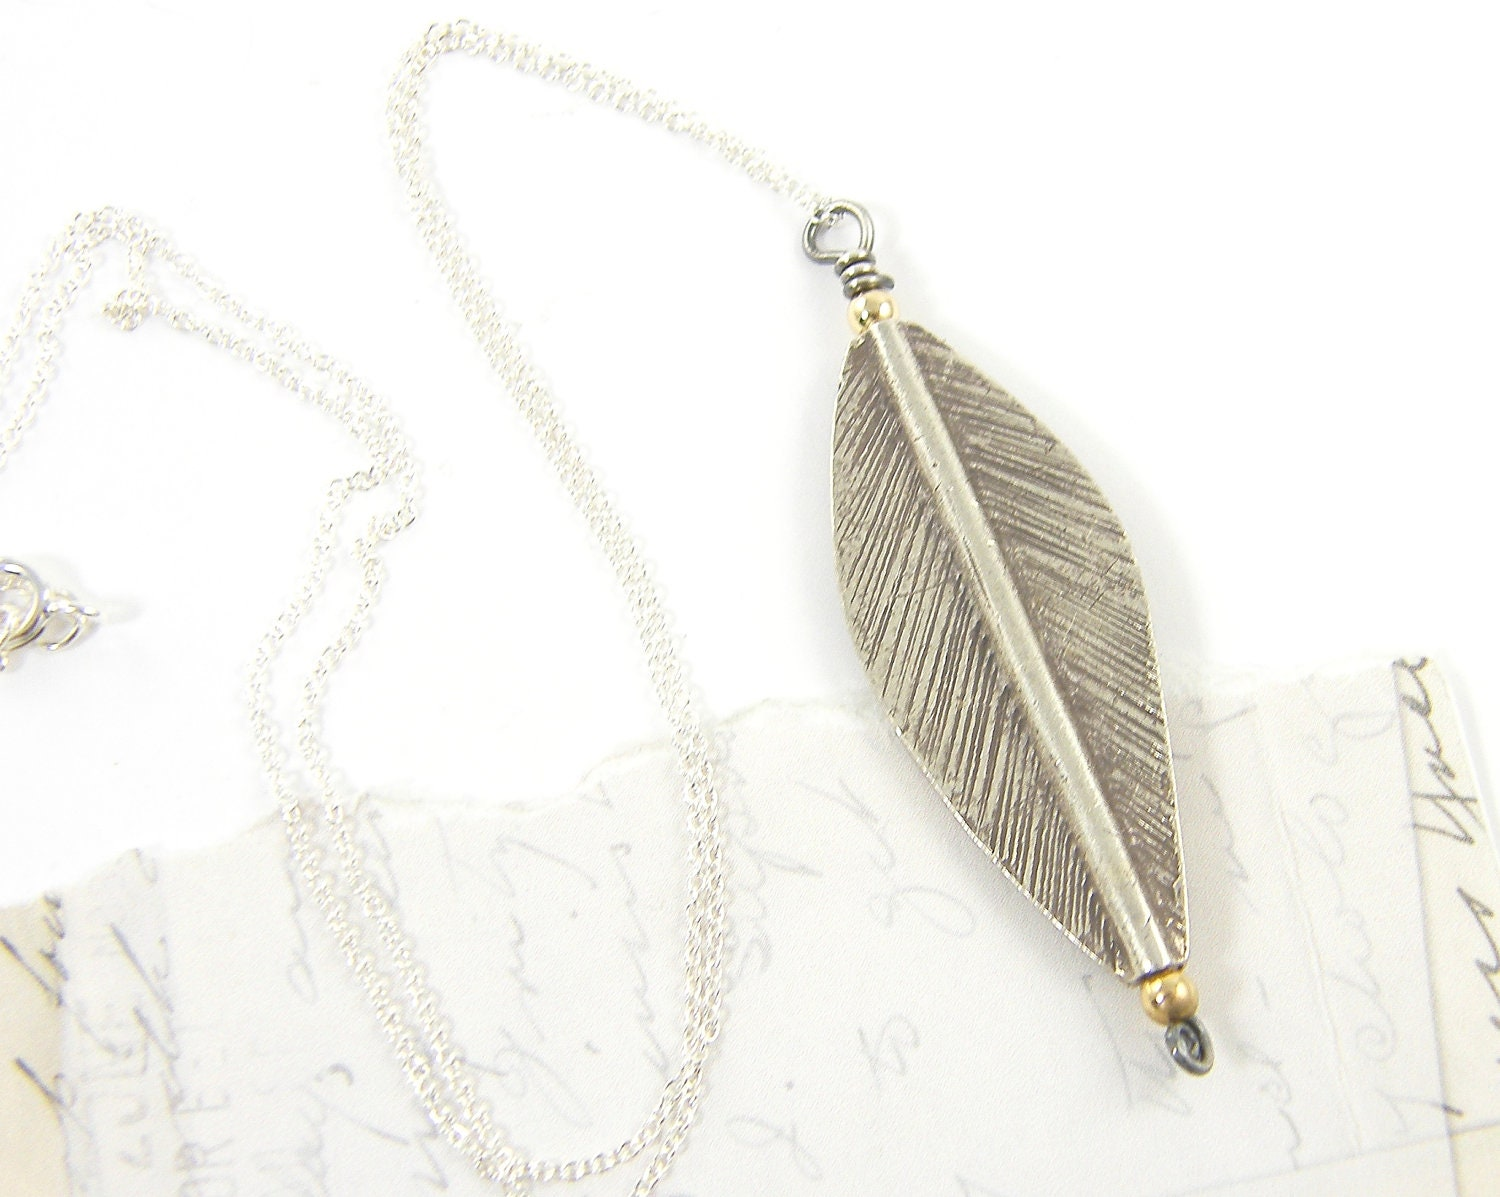 Silver Leaf Pendant Necklace - Mixed Metal Jewelry - CharleneSevier